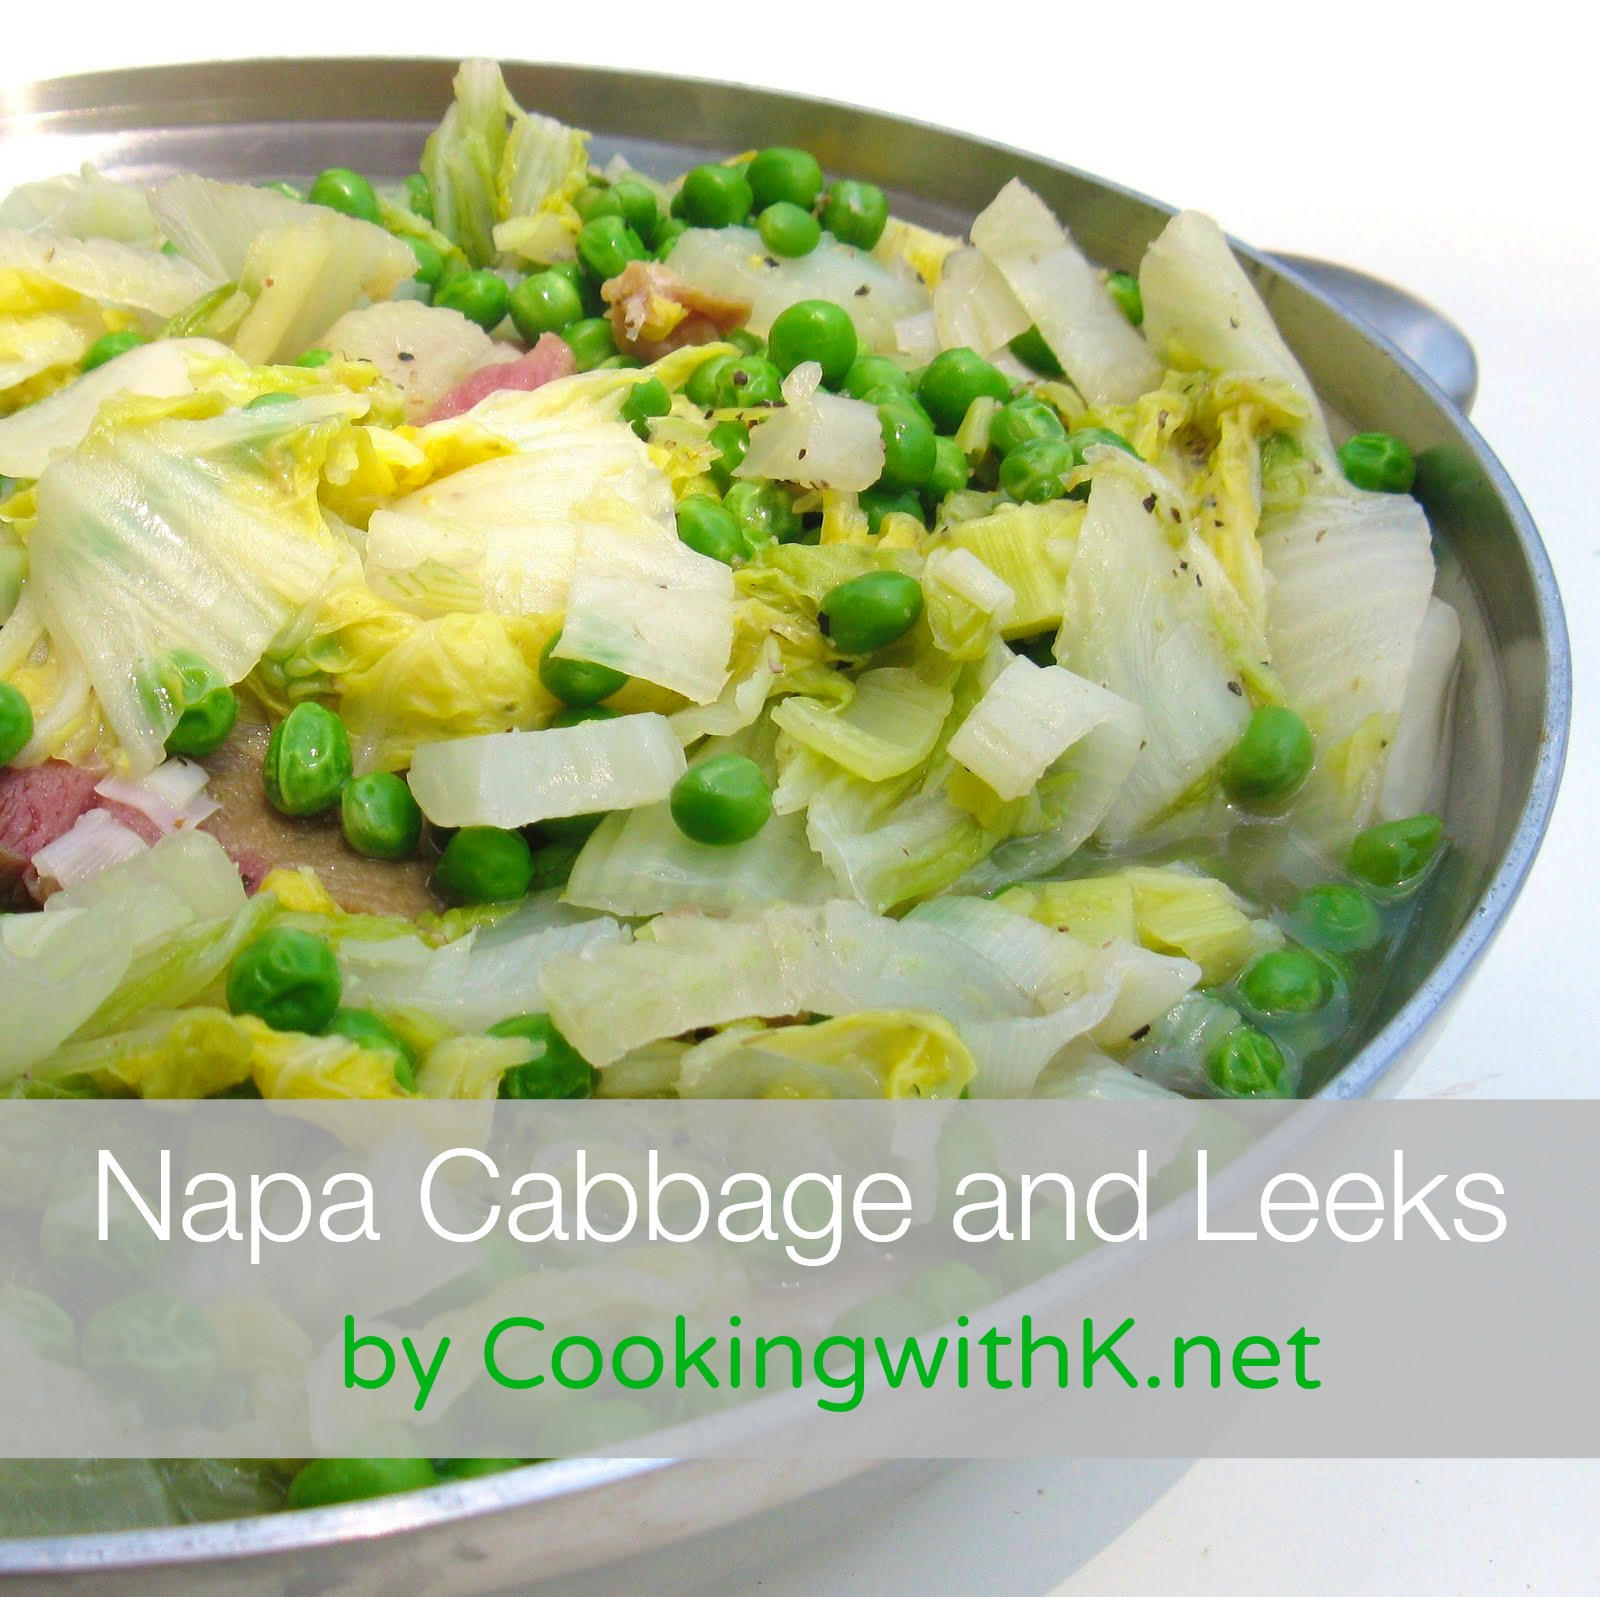 Napa Cabbage and Leeks